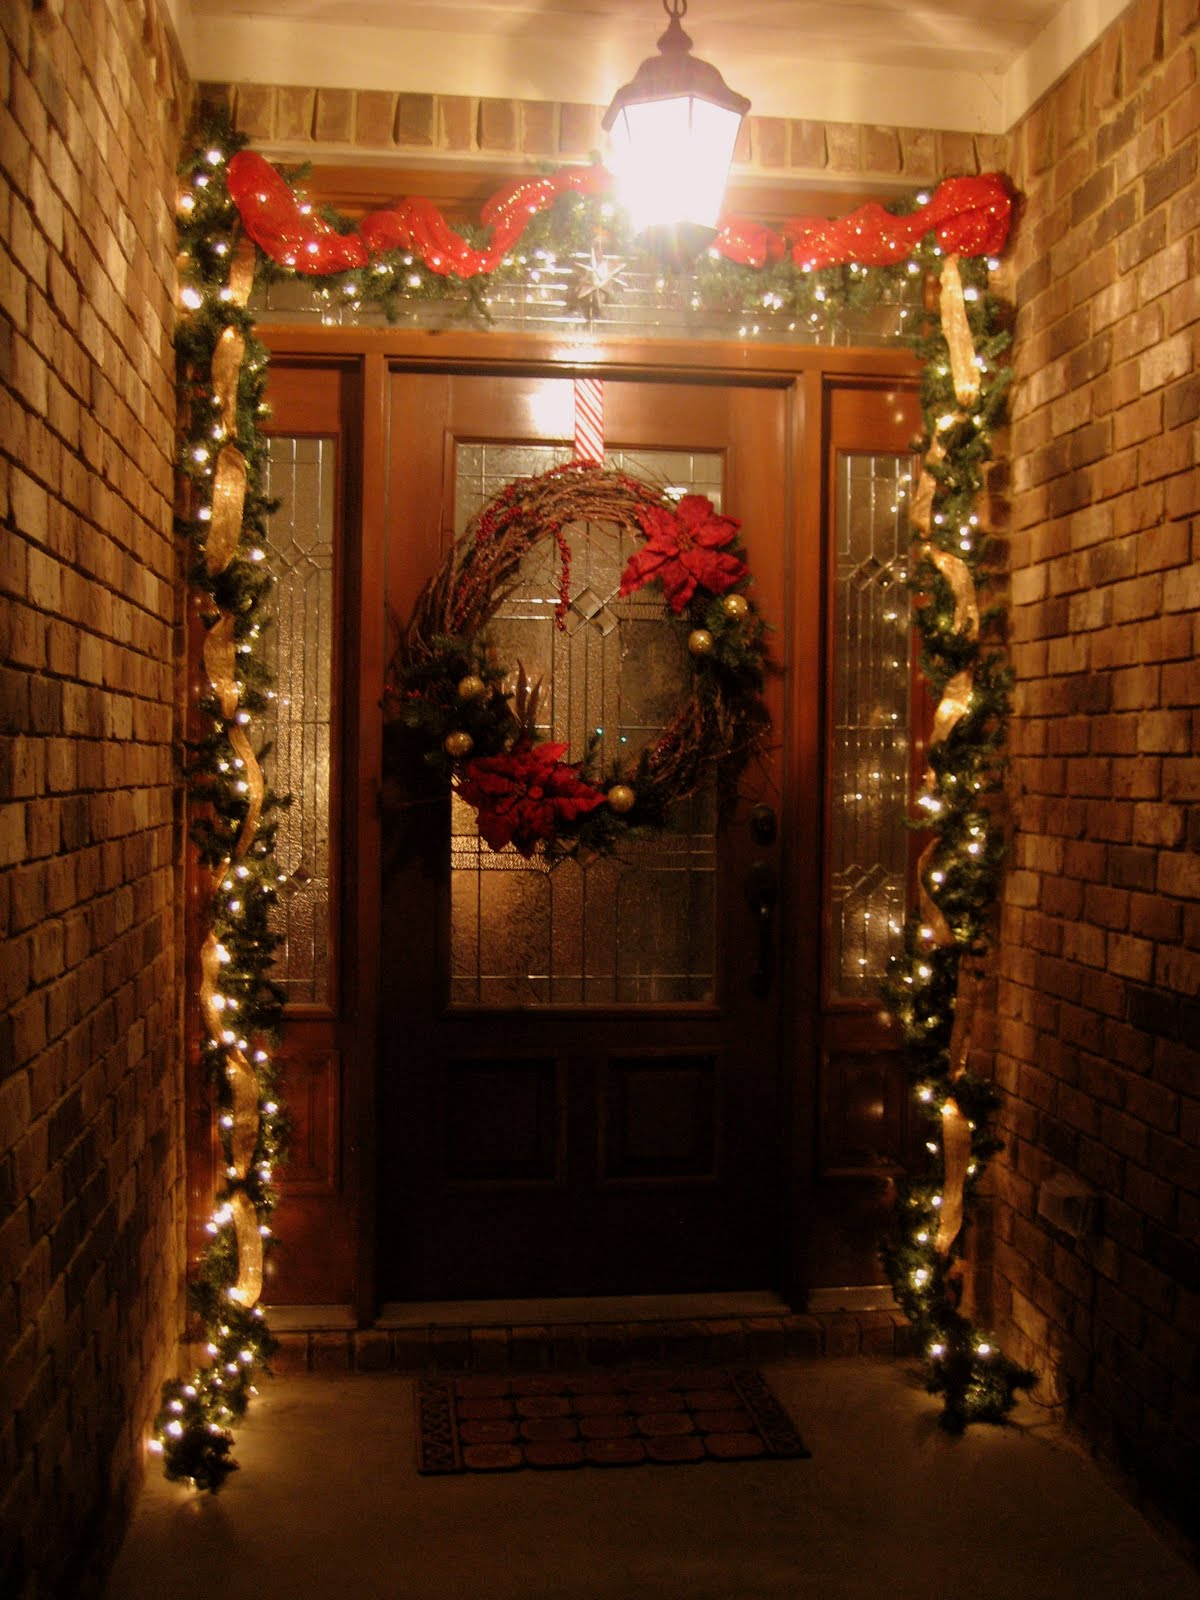 35 front door christmas decorations ideas for Interior home christmas decorations